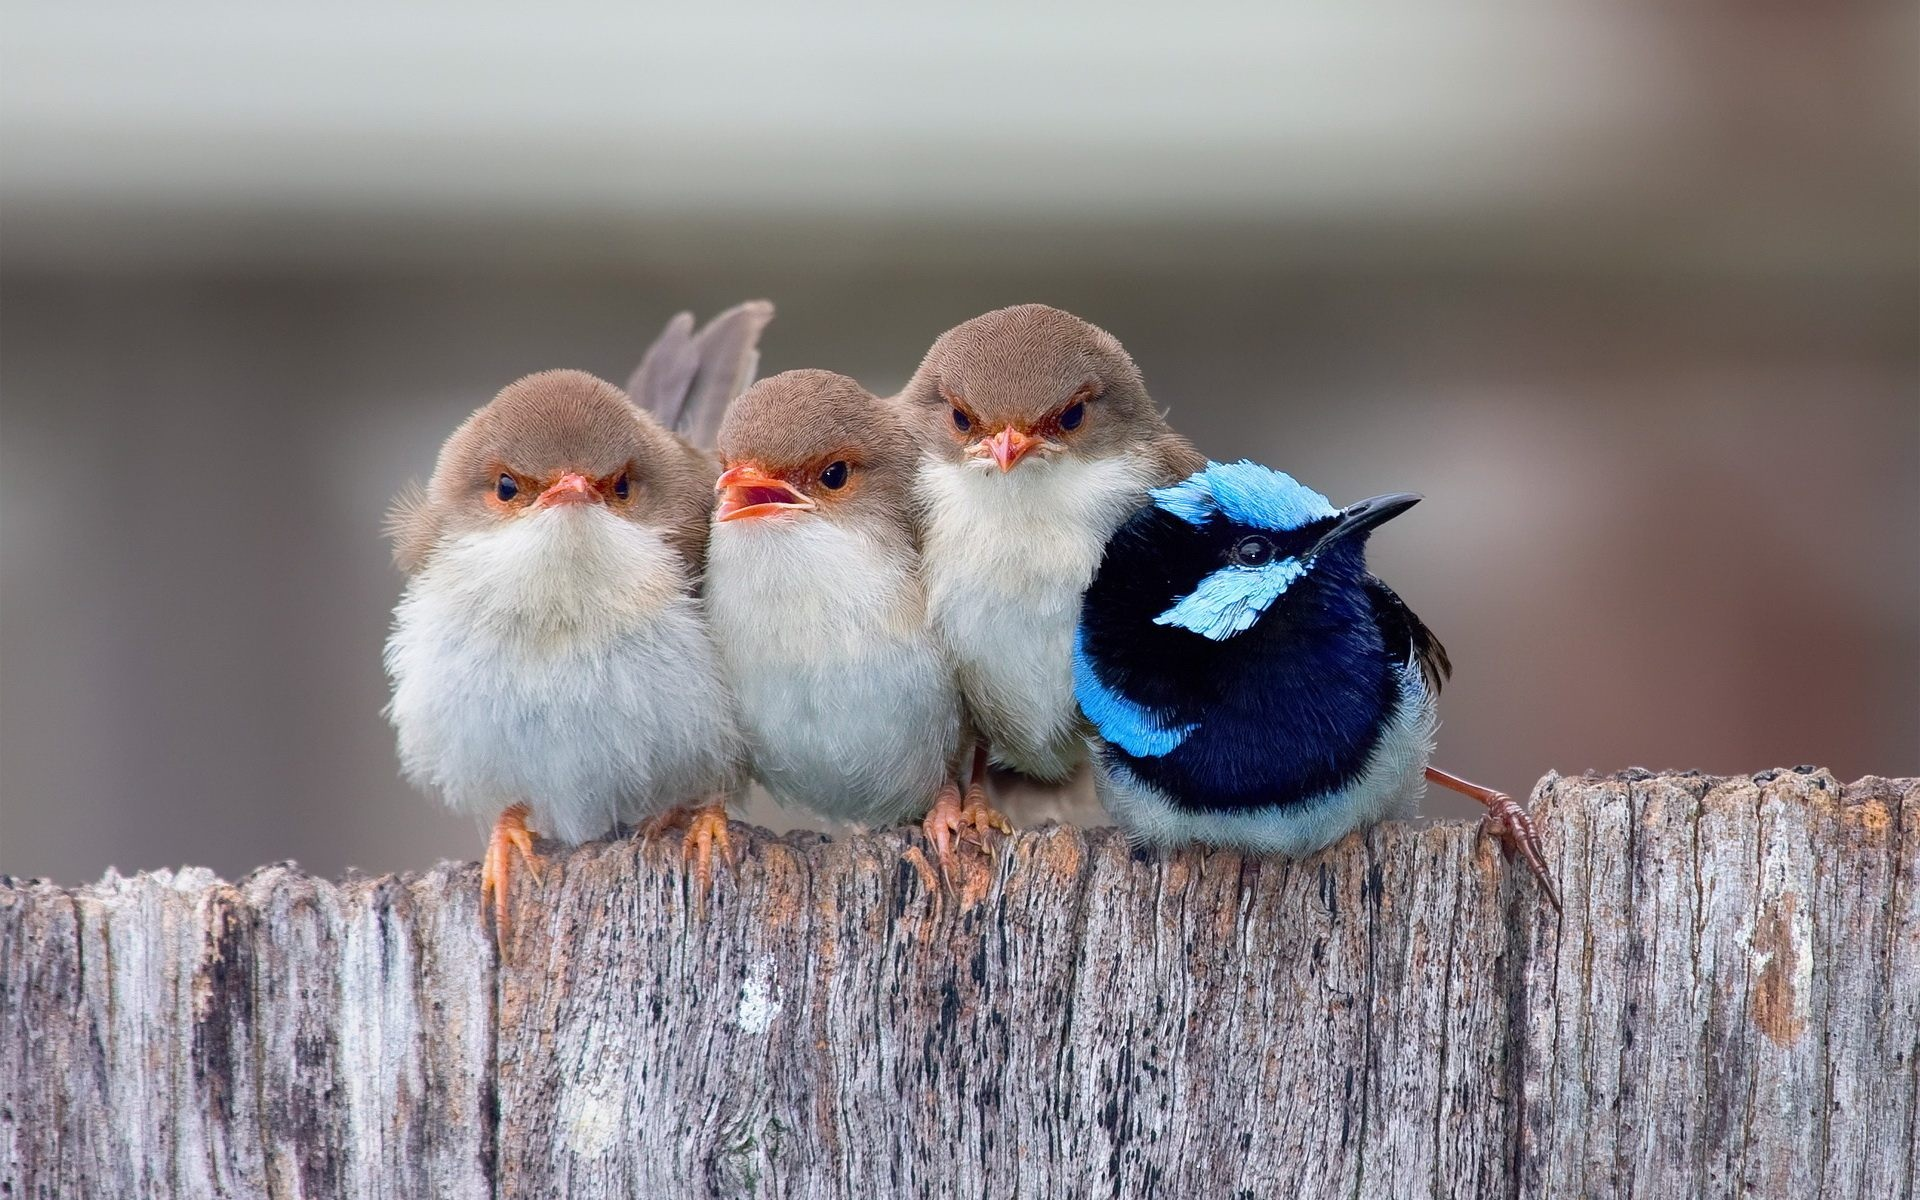 Cute-Birds-Baby-So-Sweet-Wallpaper